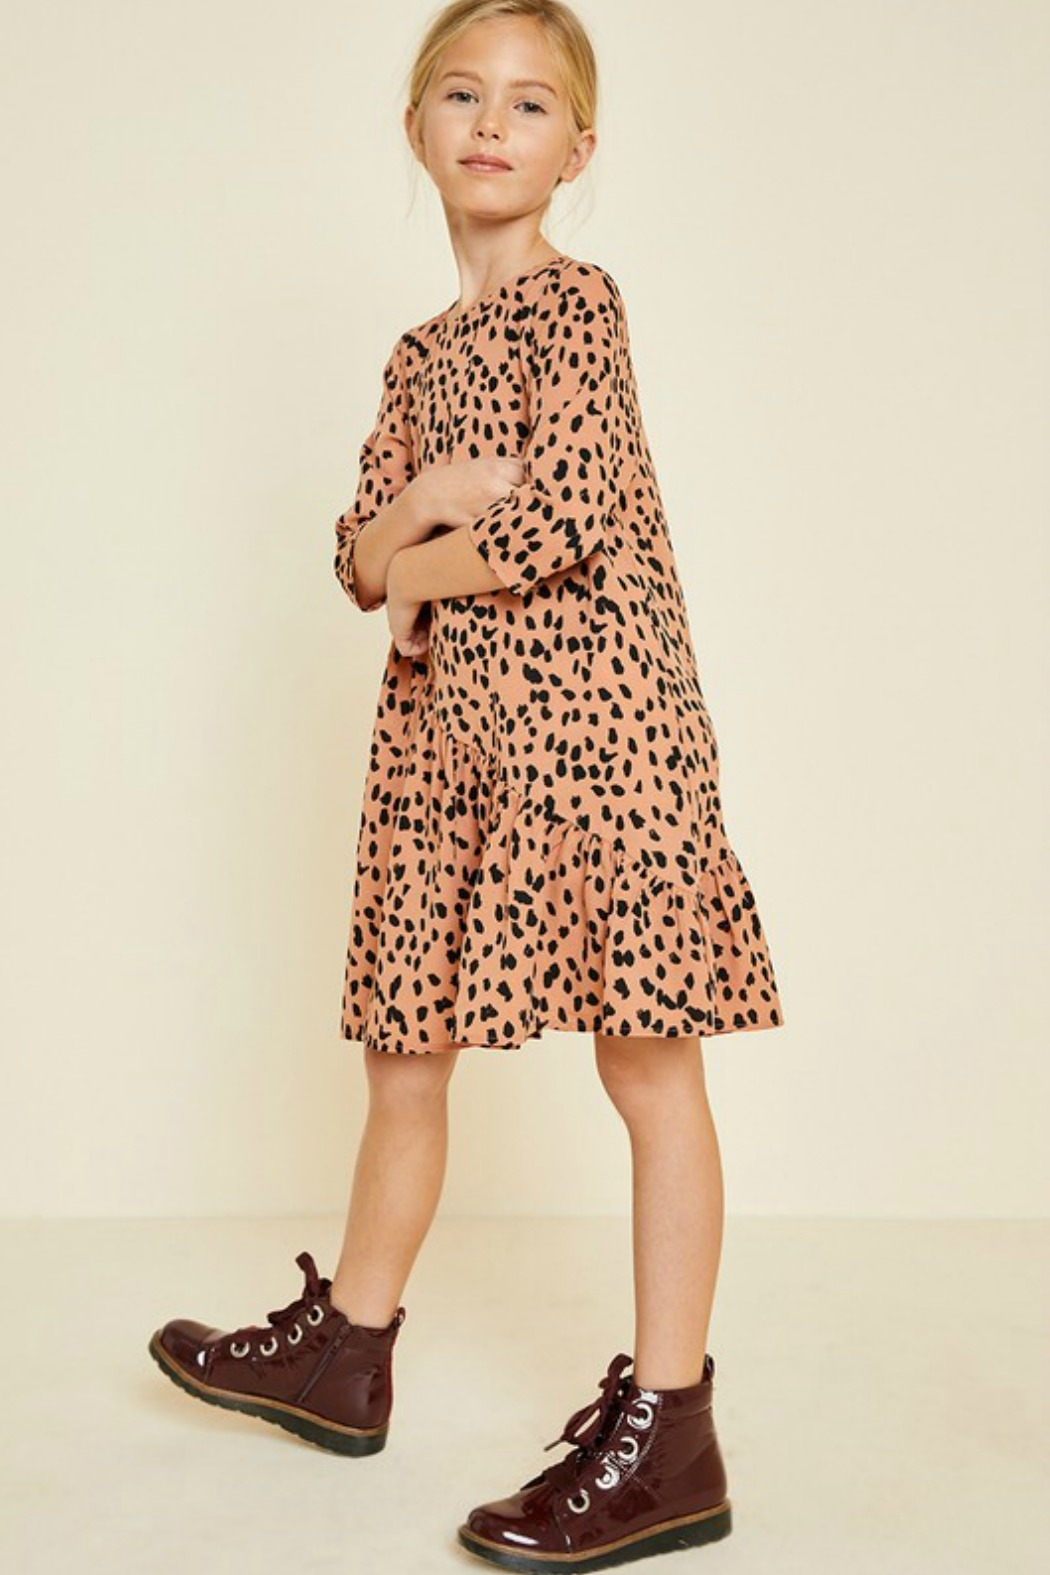 R+D emporium  Cheetah Blush Dress - Side Cropped Image